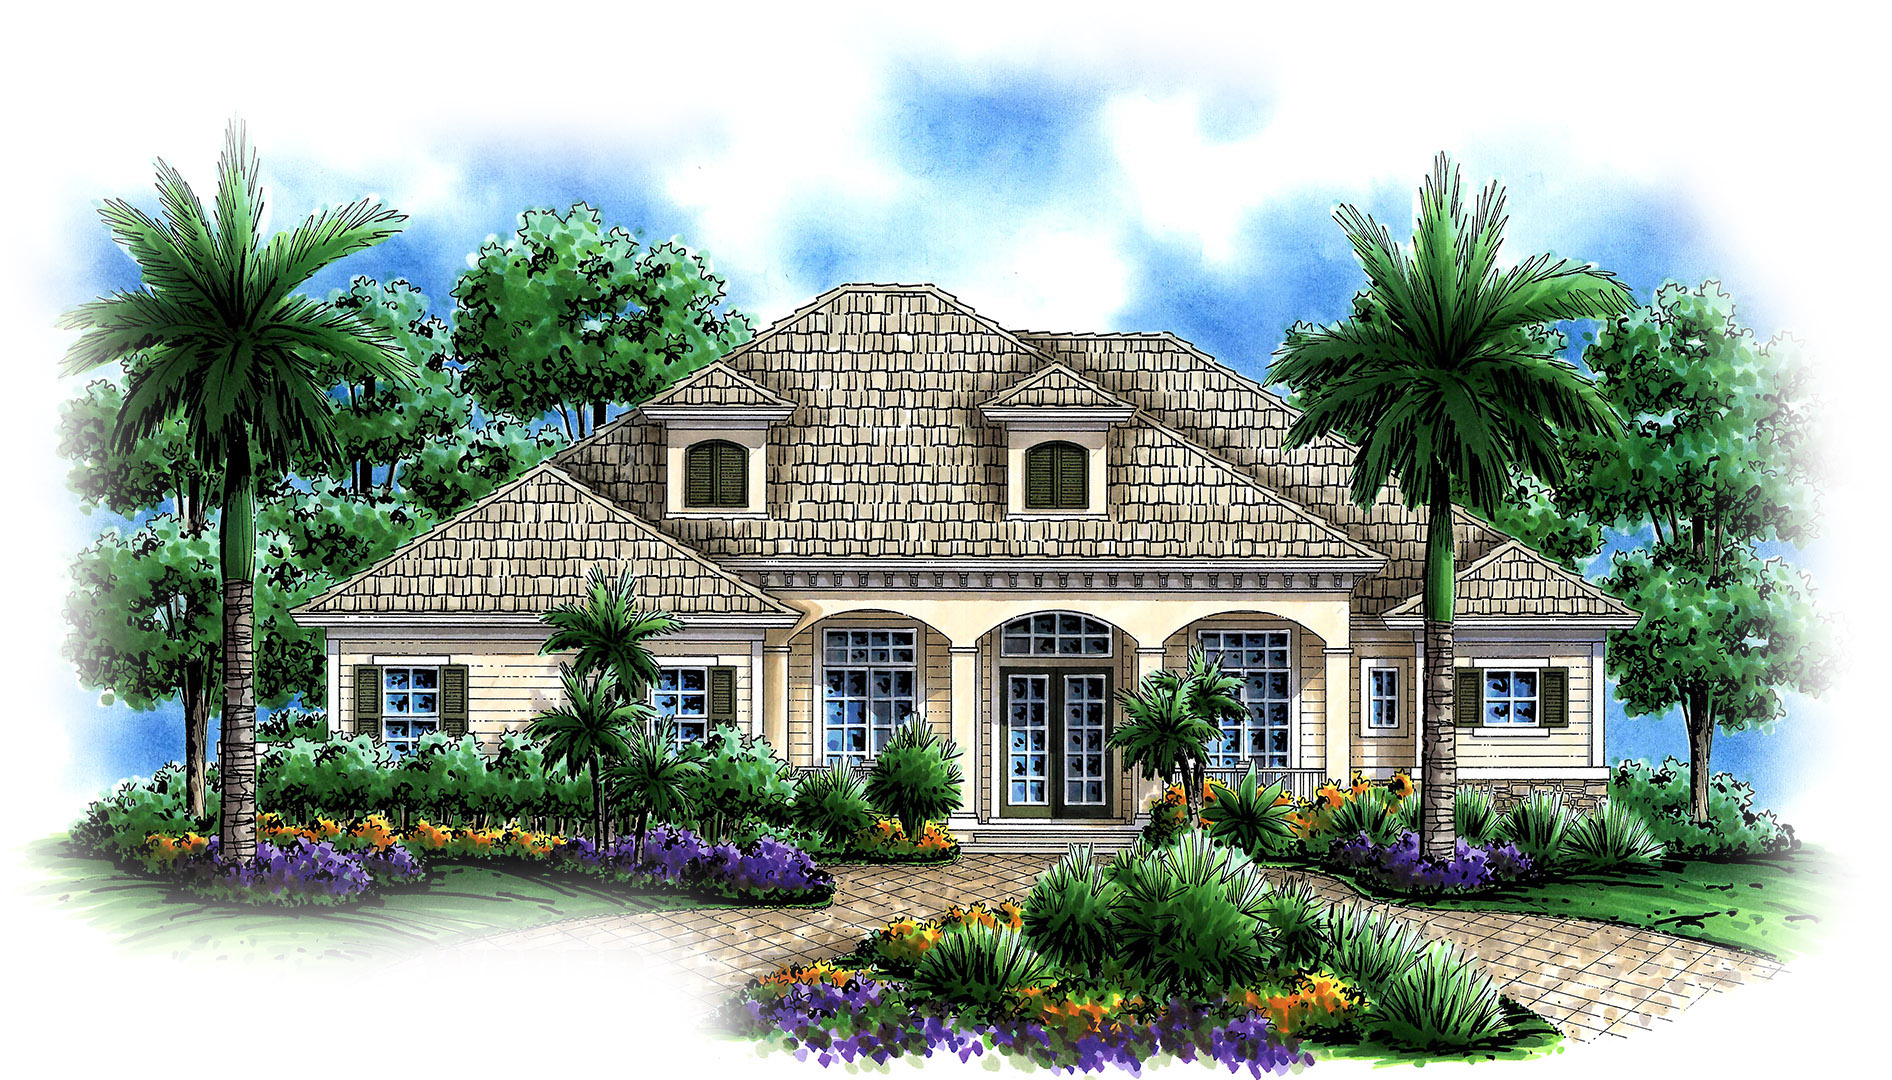 66225we_1479214512 Veranda Home Plans on luxe home plans, boathouse home plans, loggia home plans, mansard home plans, patio home plans, better homes and gardens home plans, breezeway home plans, porch home plans, this old house home plans,